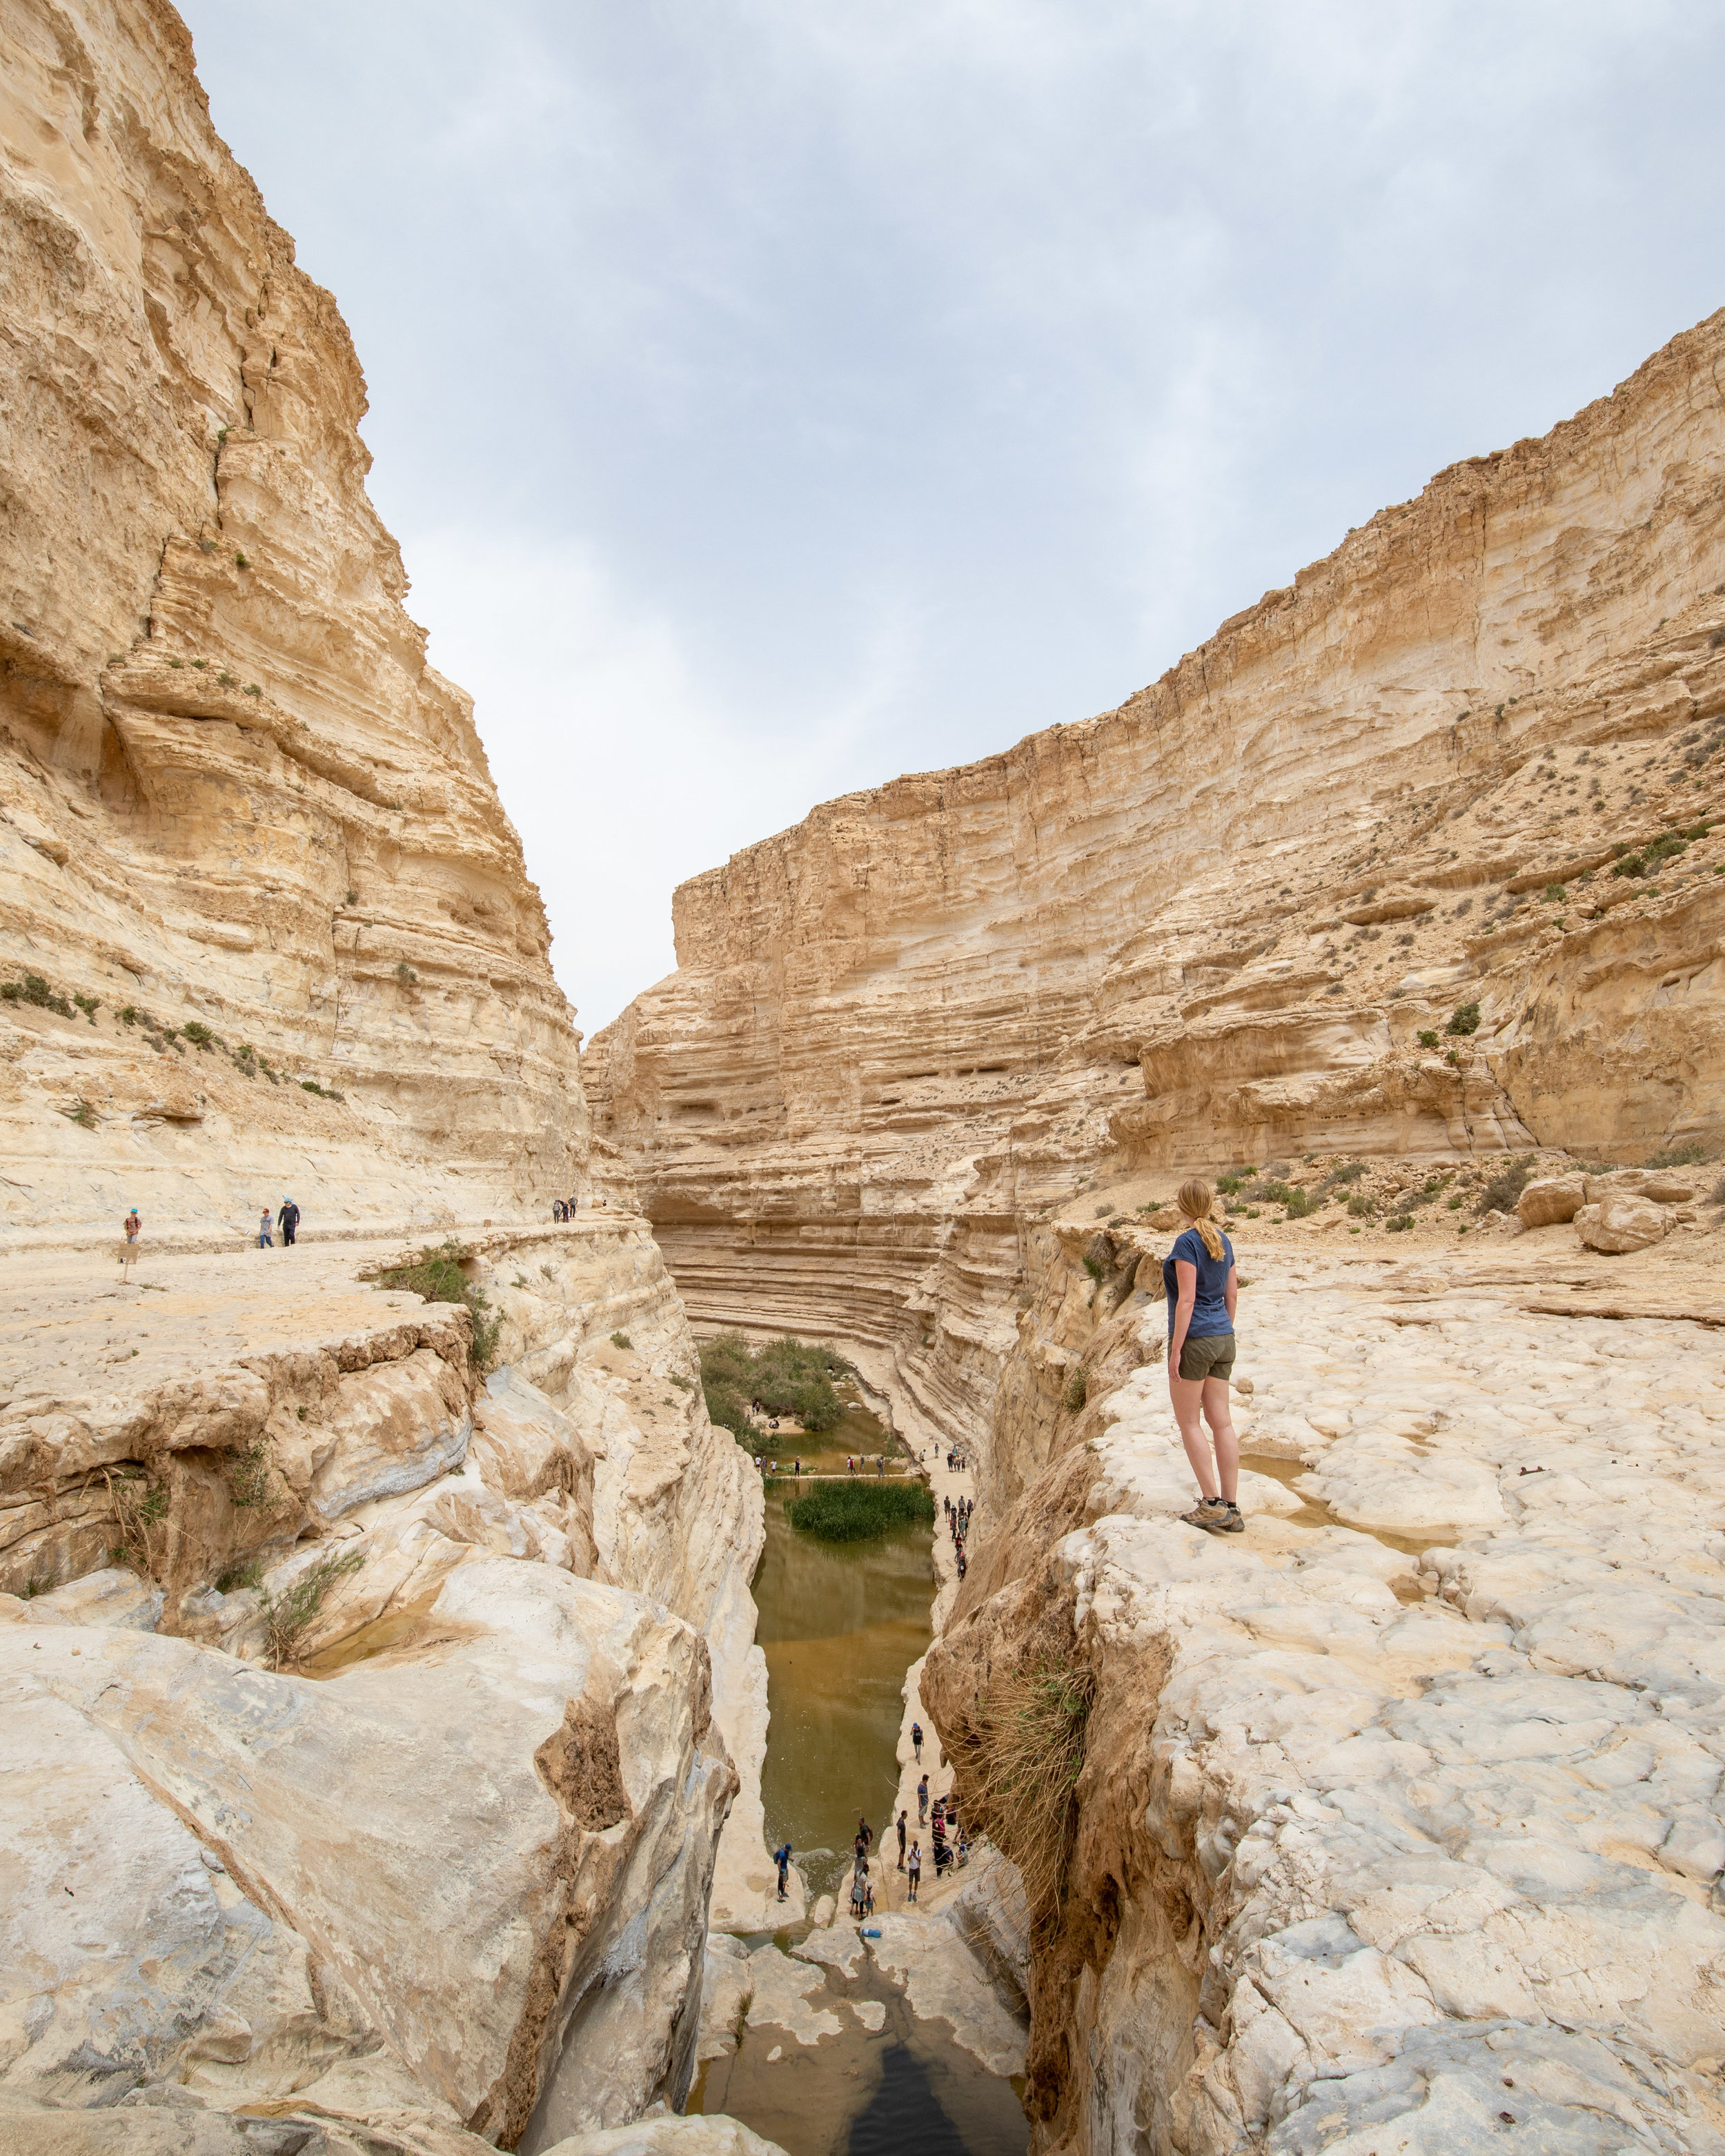 The hike at Ein Avdat - things to do in Negev Desert